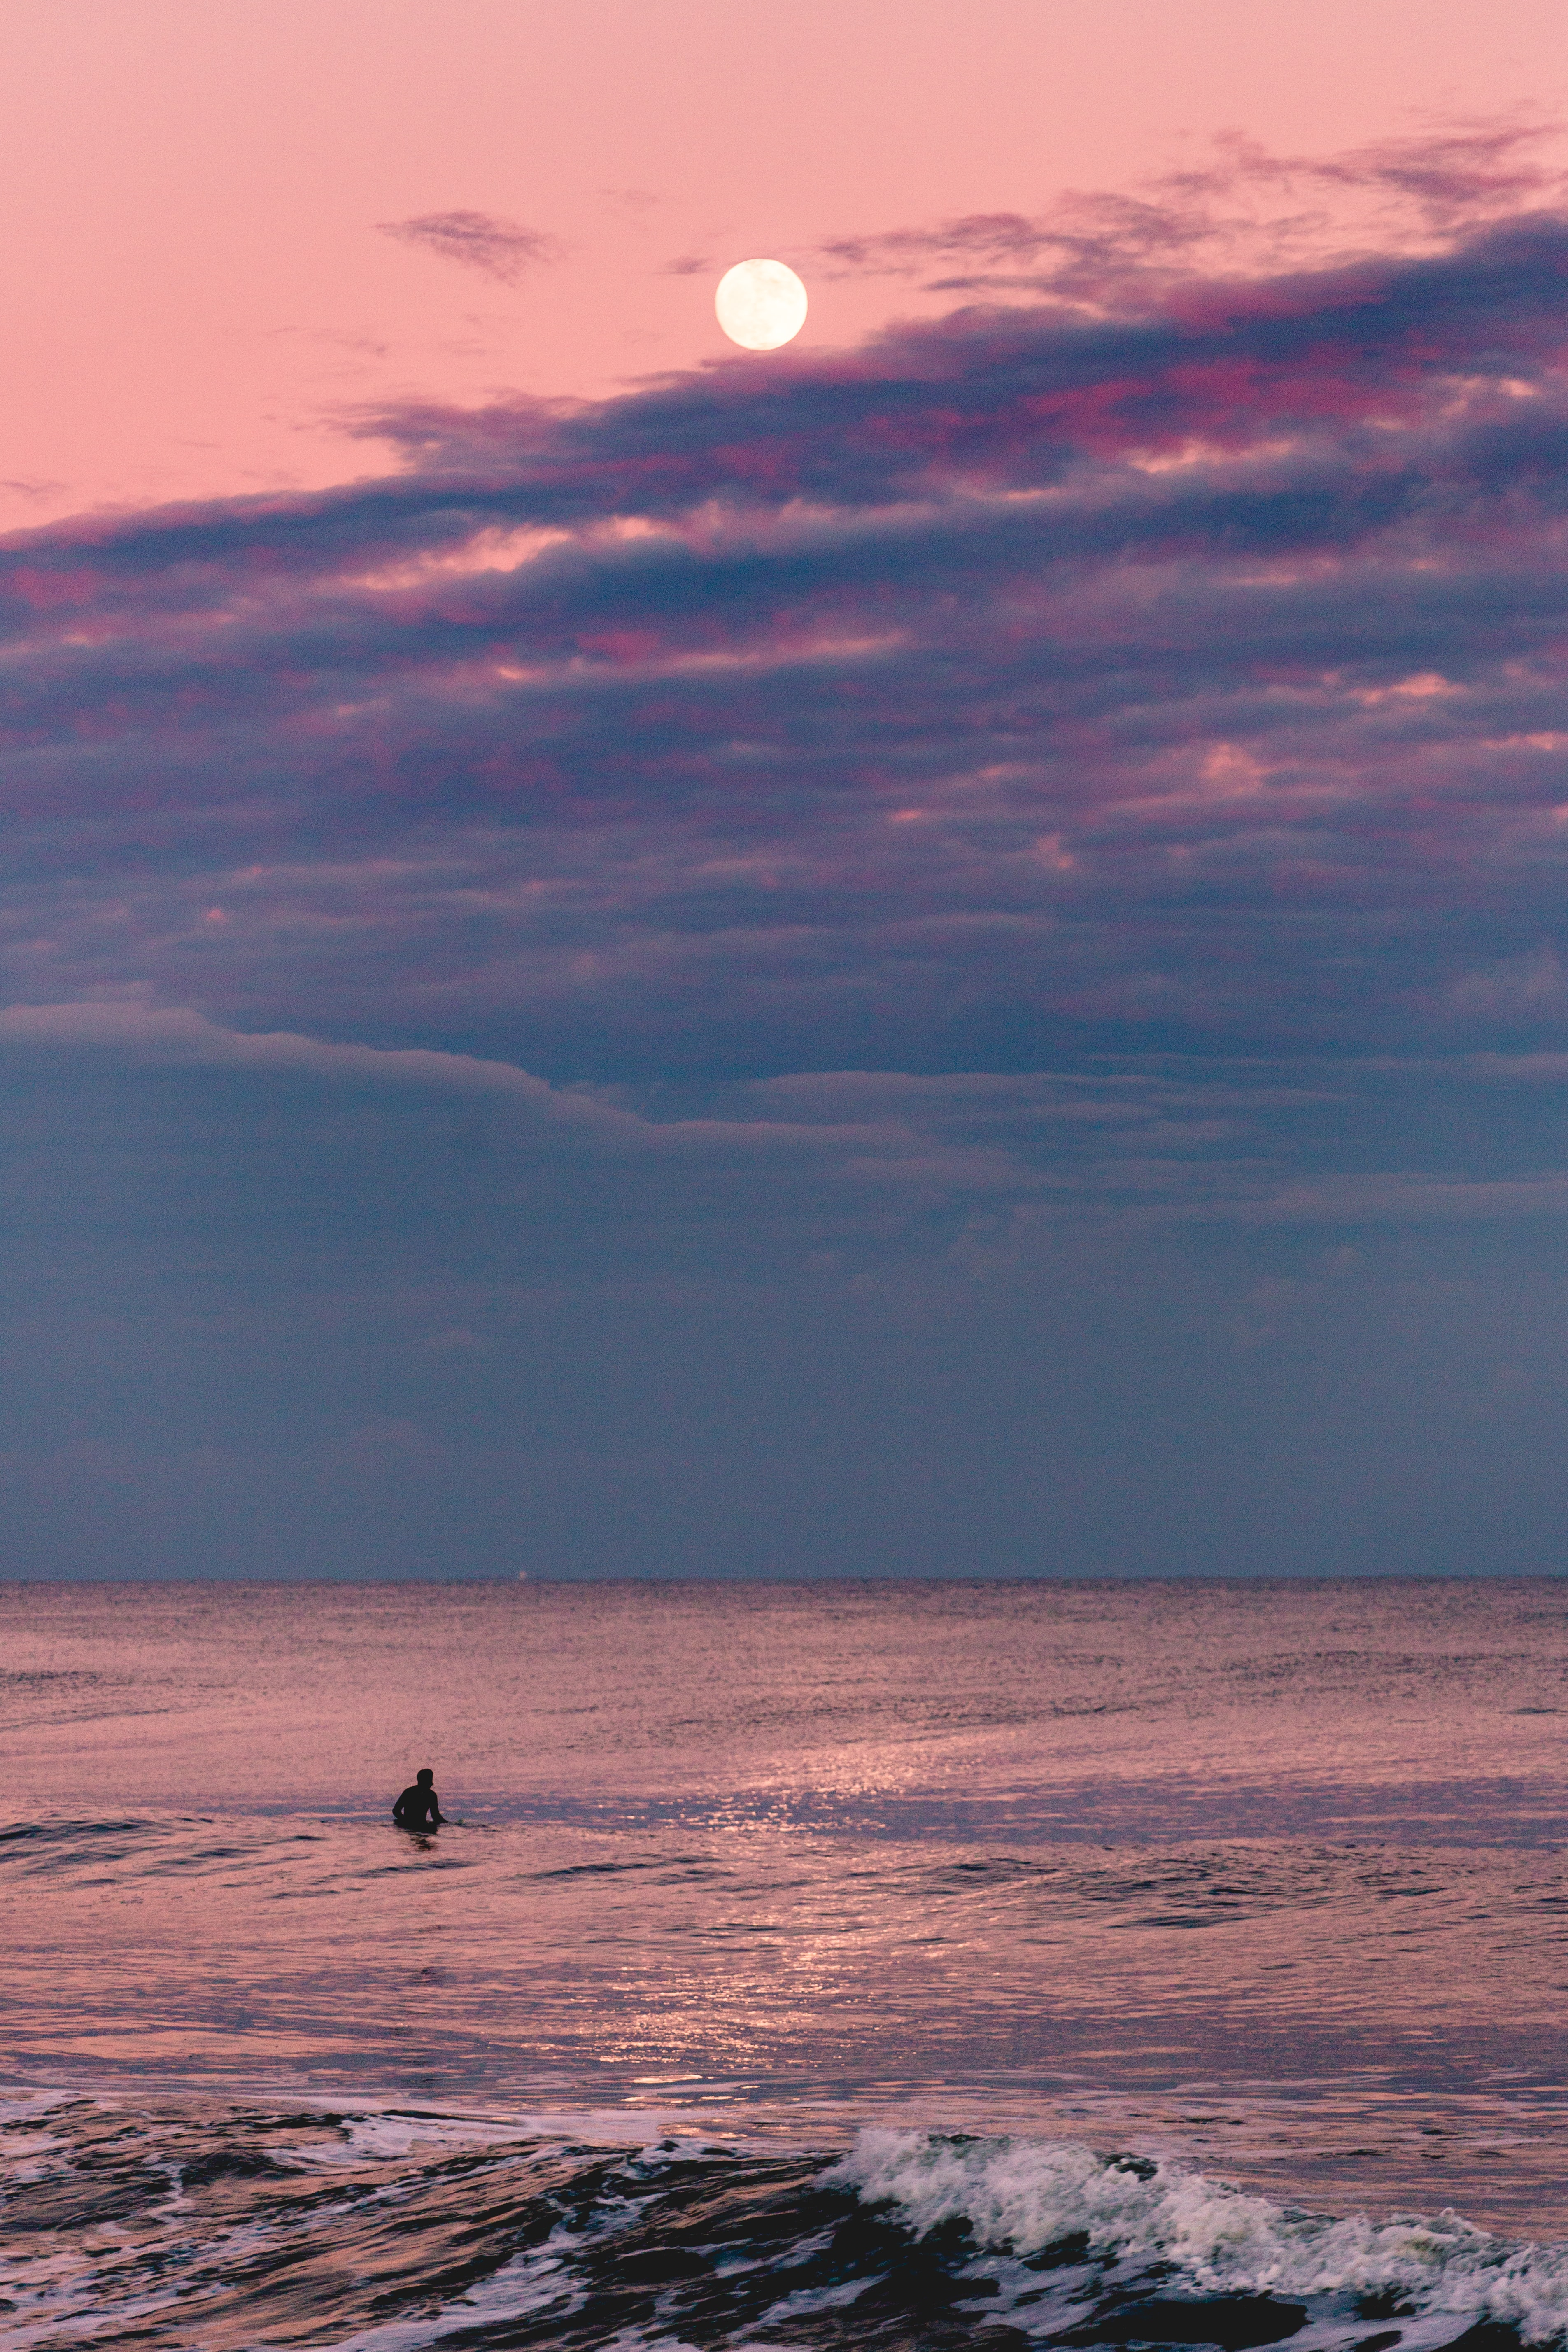 A surfer at Avon-by-the-sea at dusk with a full moon above on a pink cloudy sky